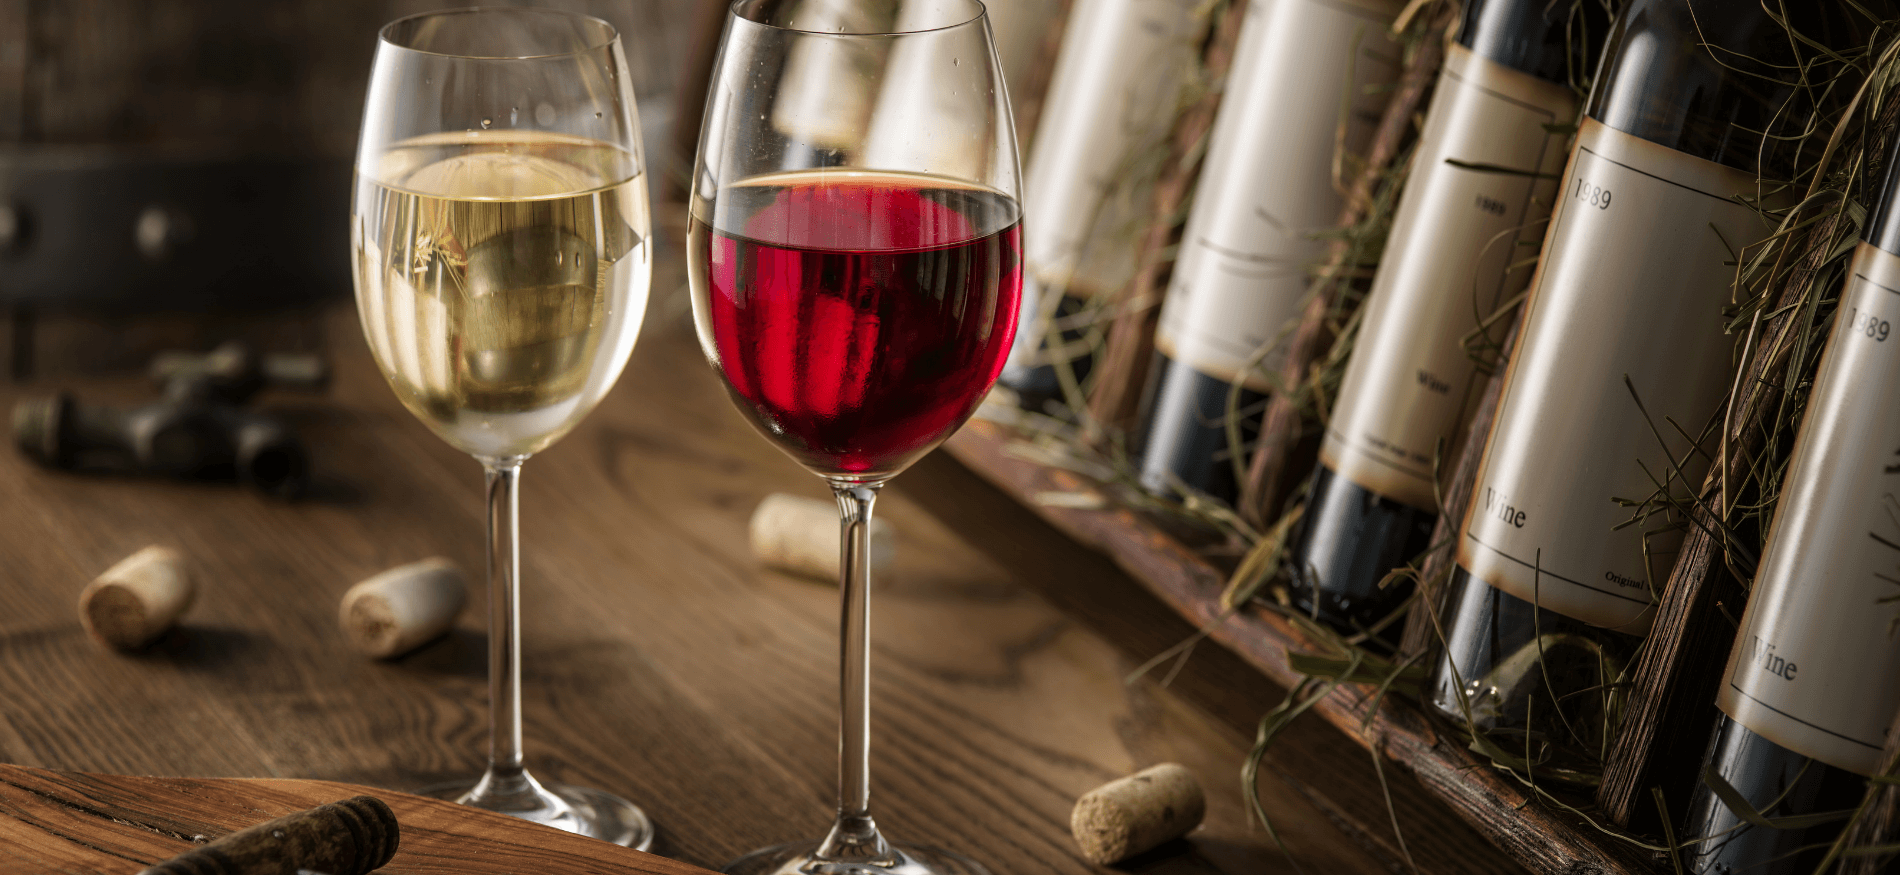 Two glasses of wine, one red and one white, in front of wine bottles.